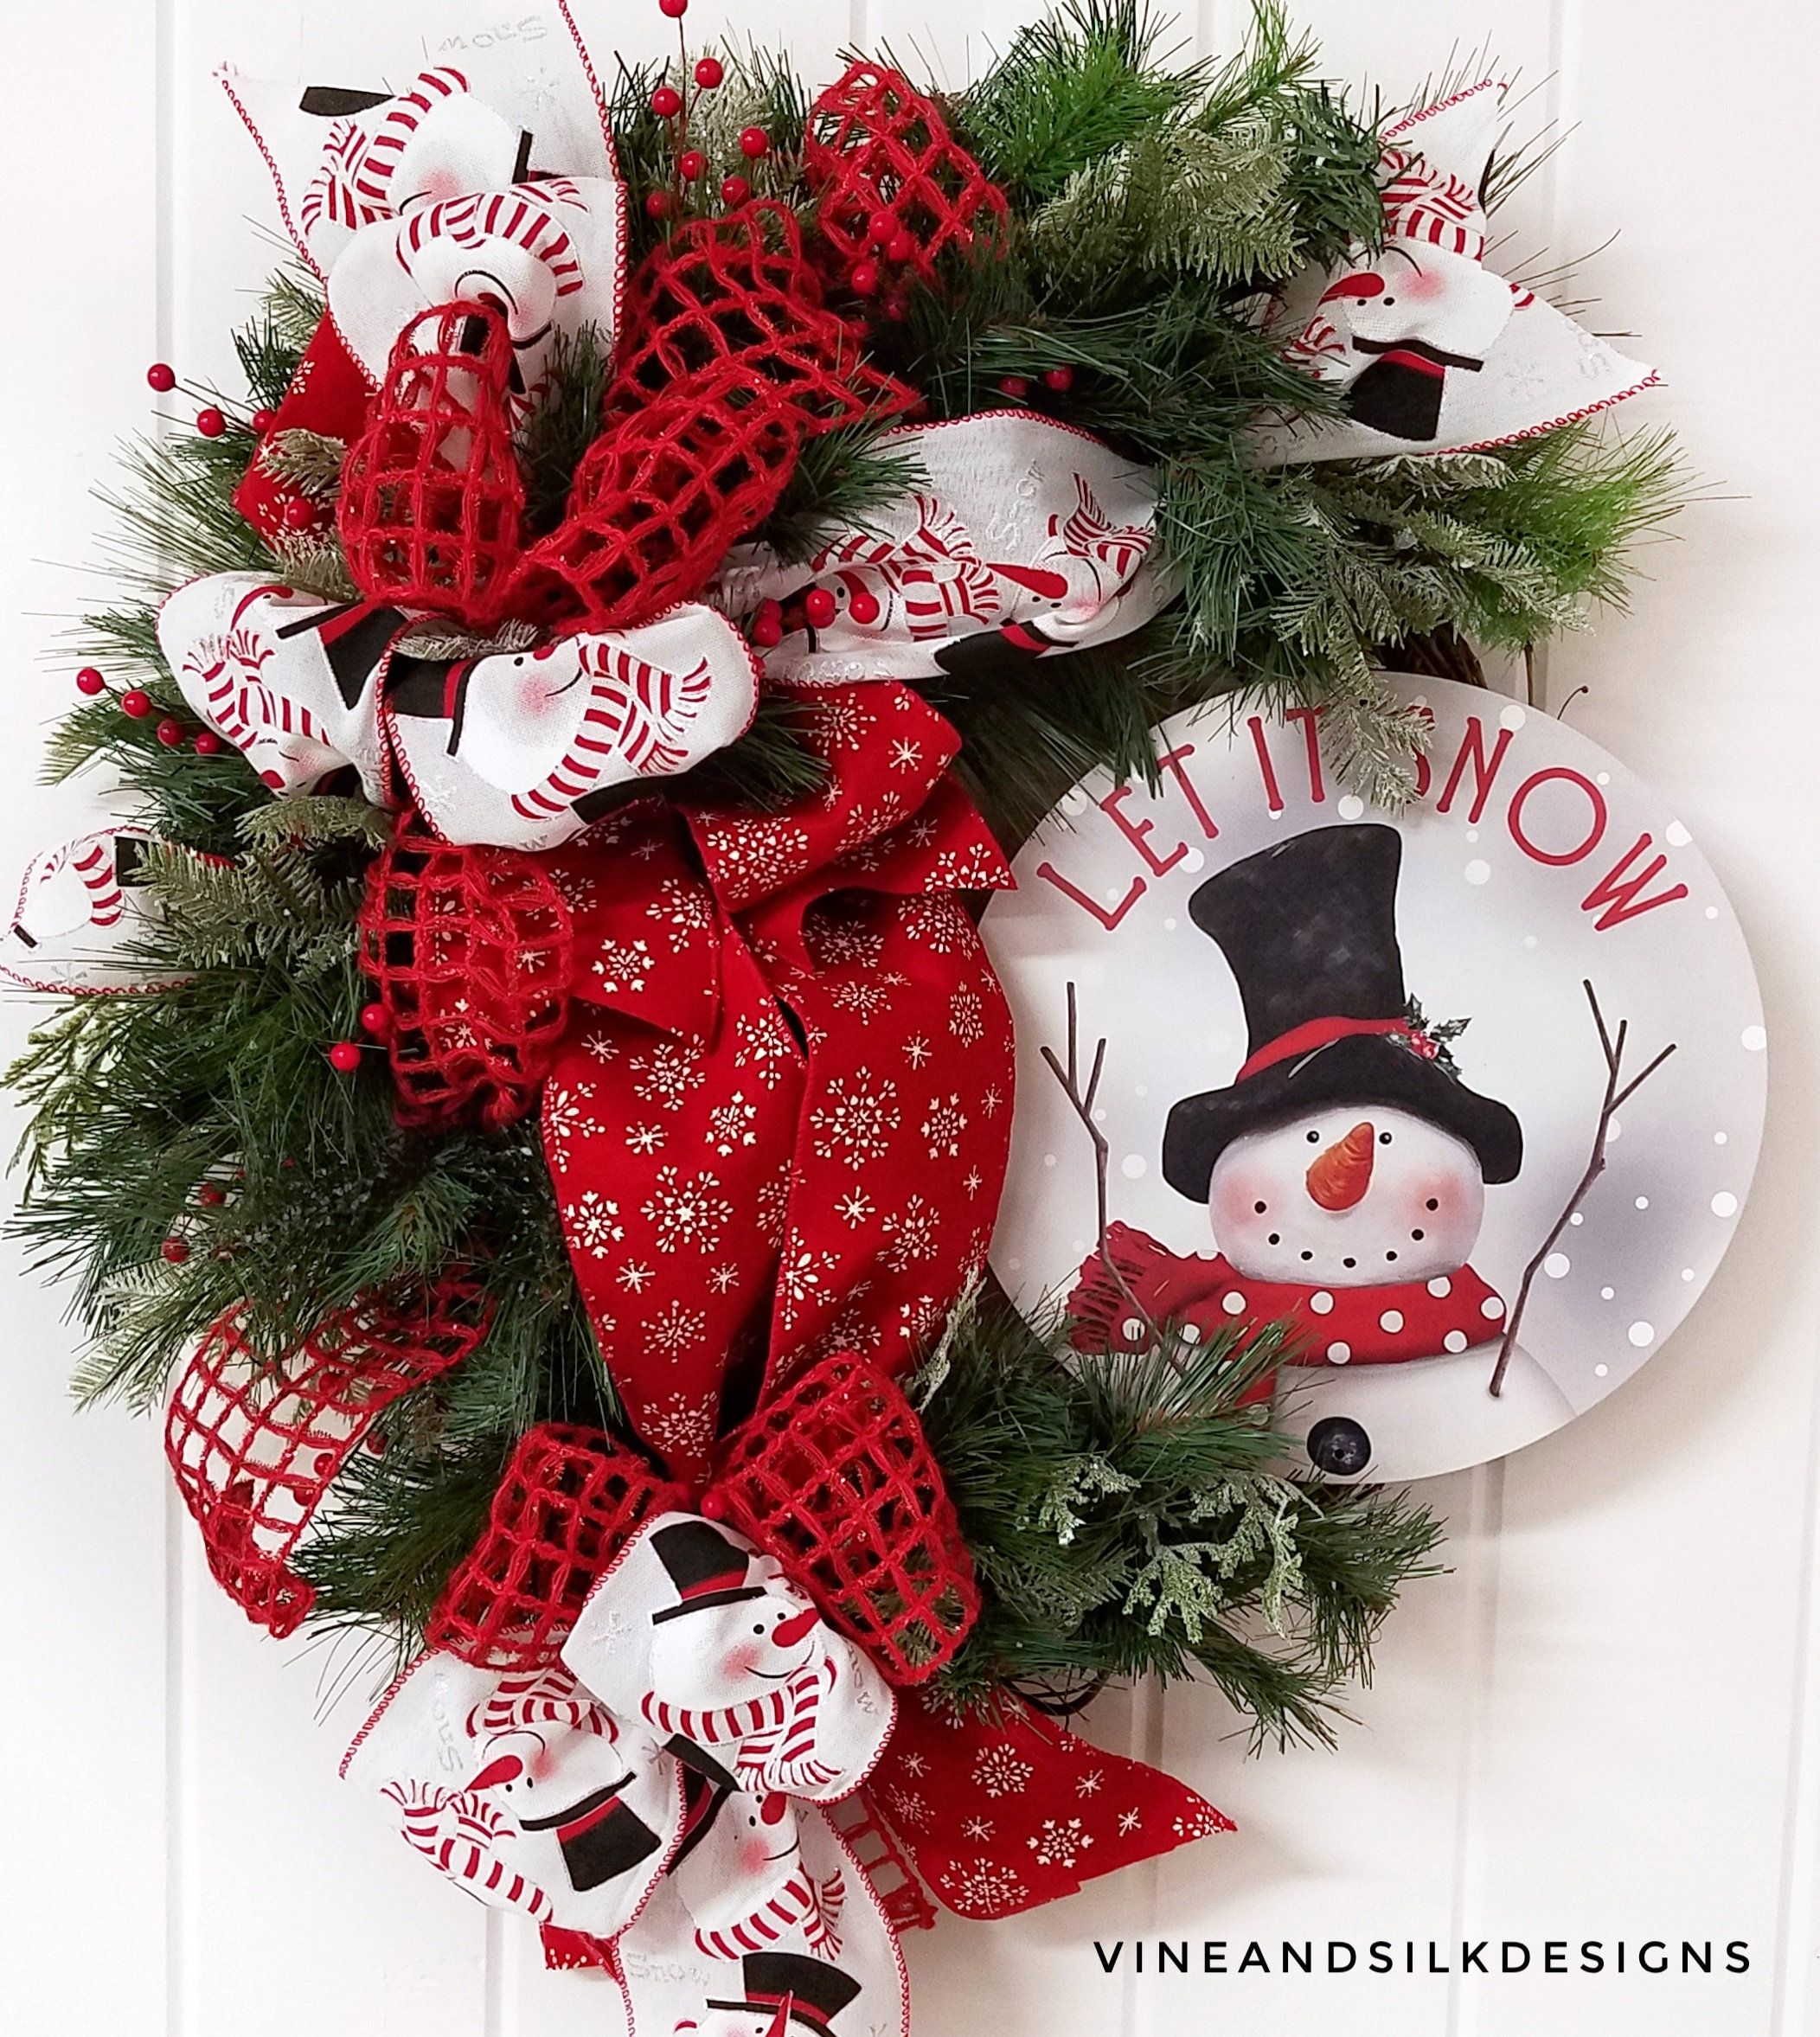 Snowman Christmas Wreath Red Ribbon Christmas Wreath Country Snowman Wreath Snowman Holiday Wreath Snowman Decor Snowman Winter Wreath Christmas Wreaths Christmas Mesh Wreaths Pretty Christmas Decorations